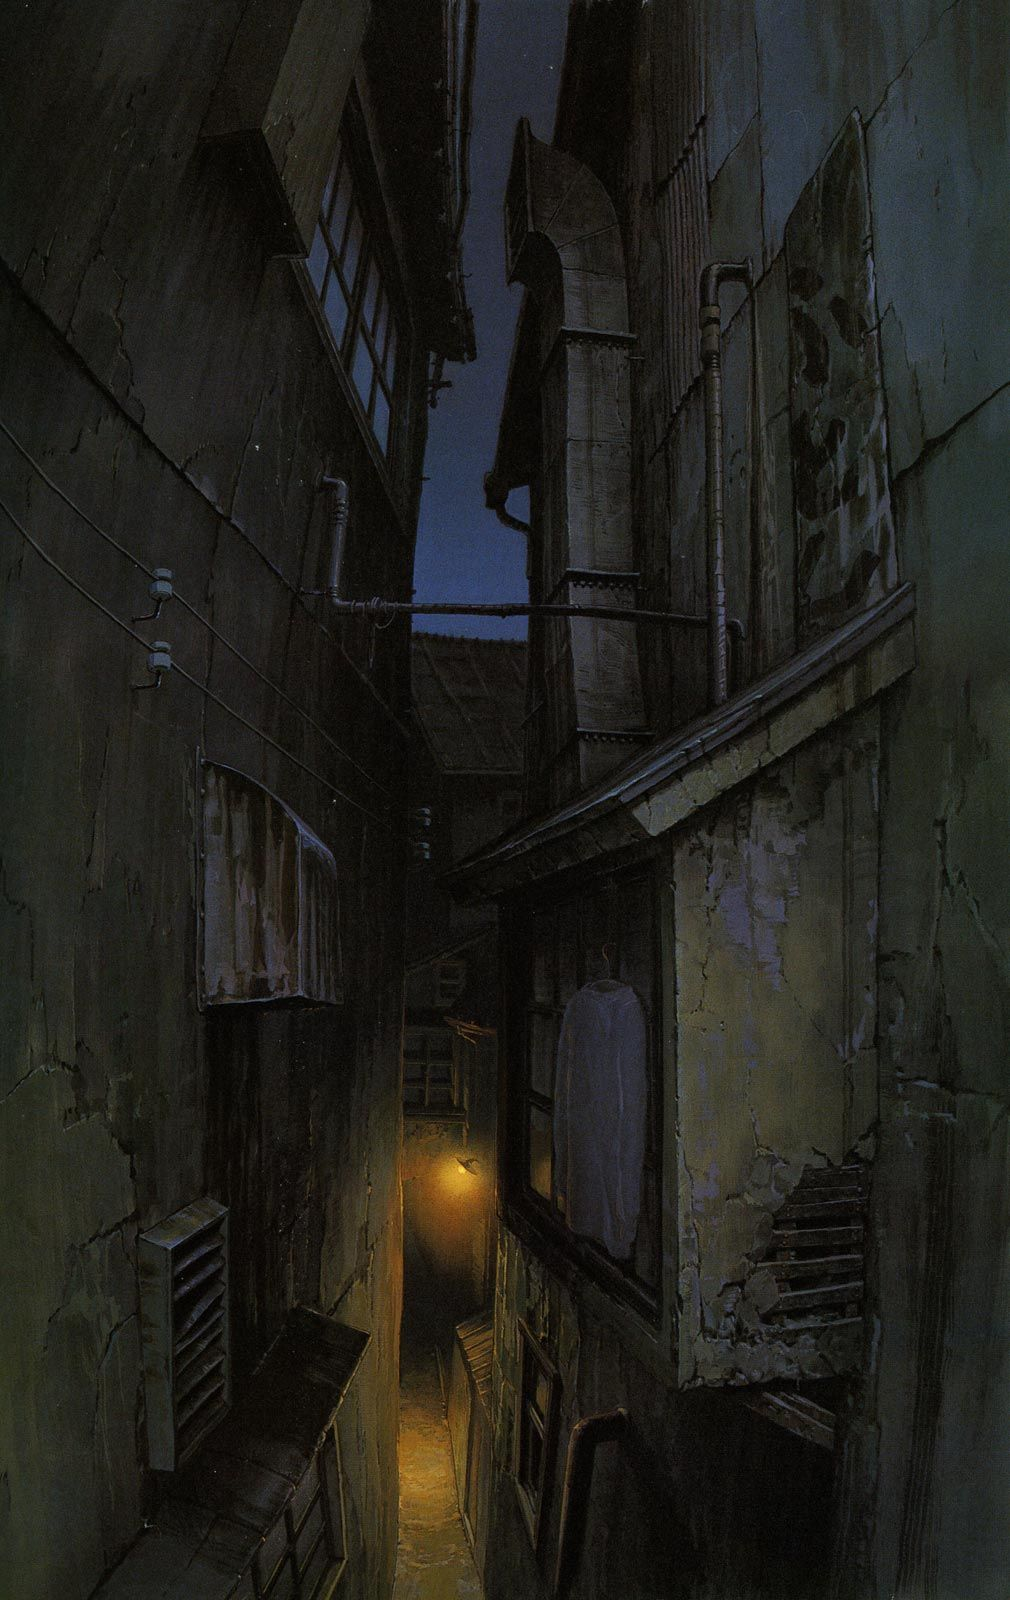 Living Lines Library: 千と千尋の神隠し / Spirited Away (2001) - Final Backgrounds